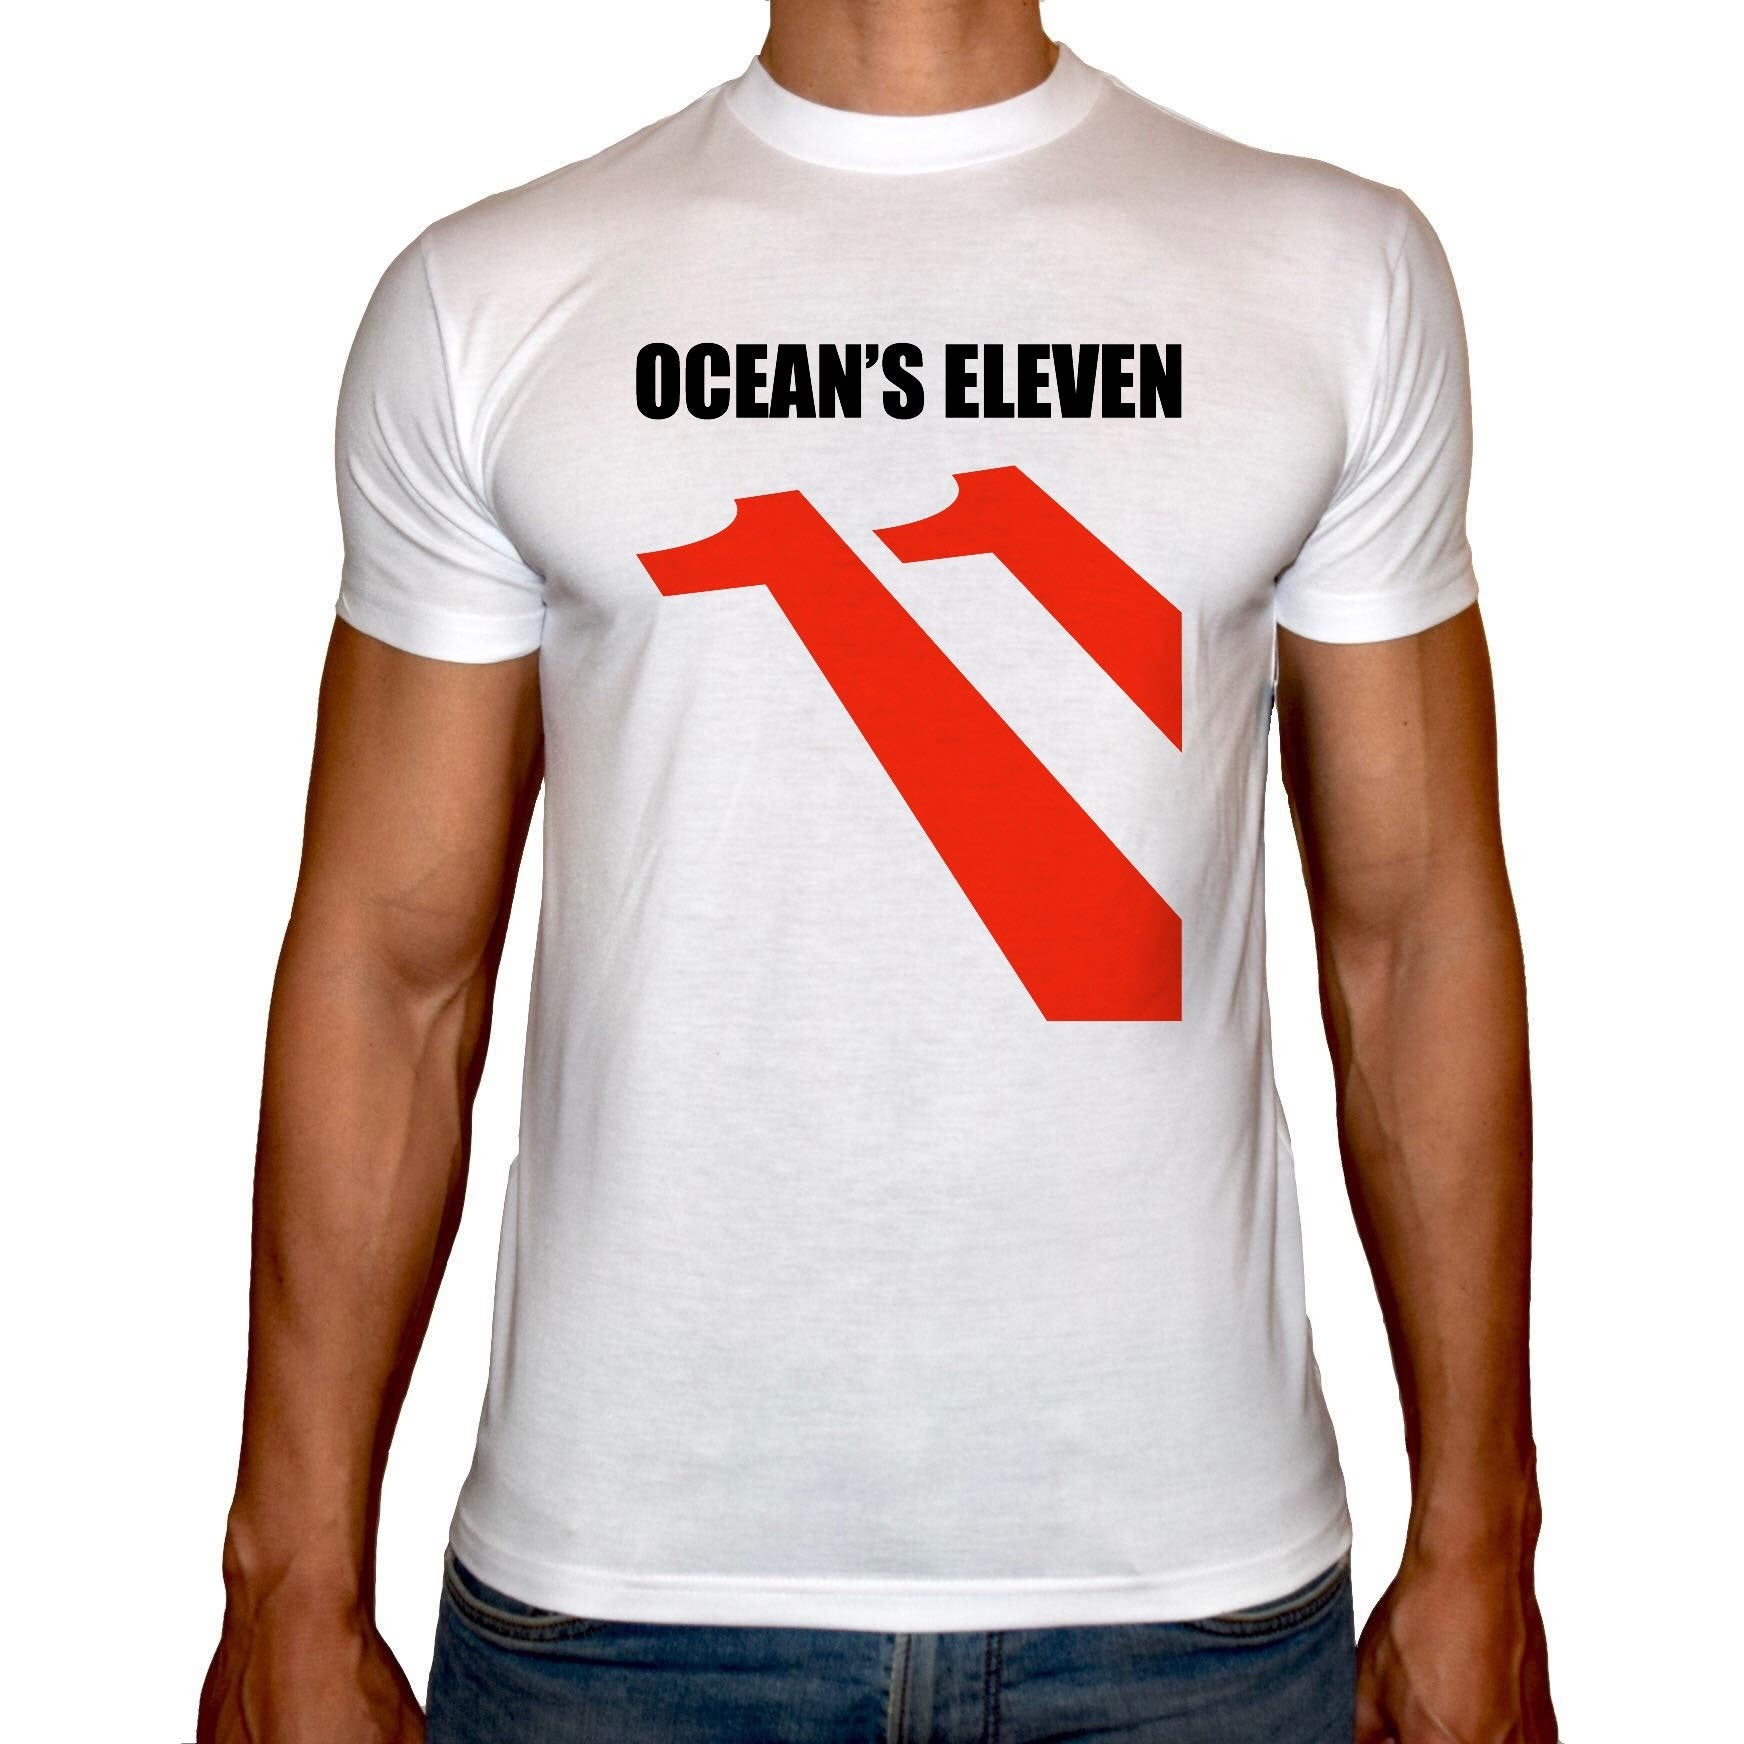 Phoenix WHITE Round Neck Printed T-Shirt Men (Ocean's eleven)